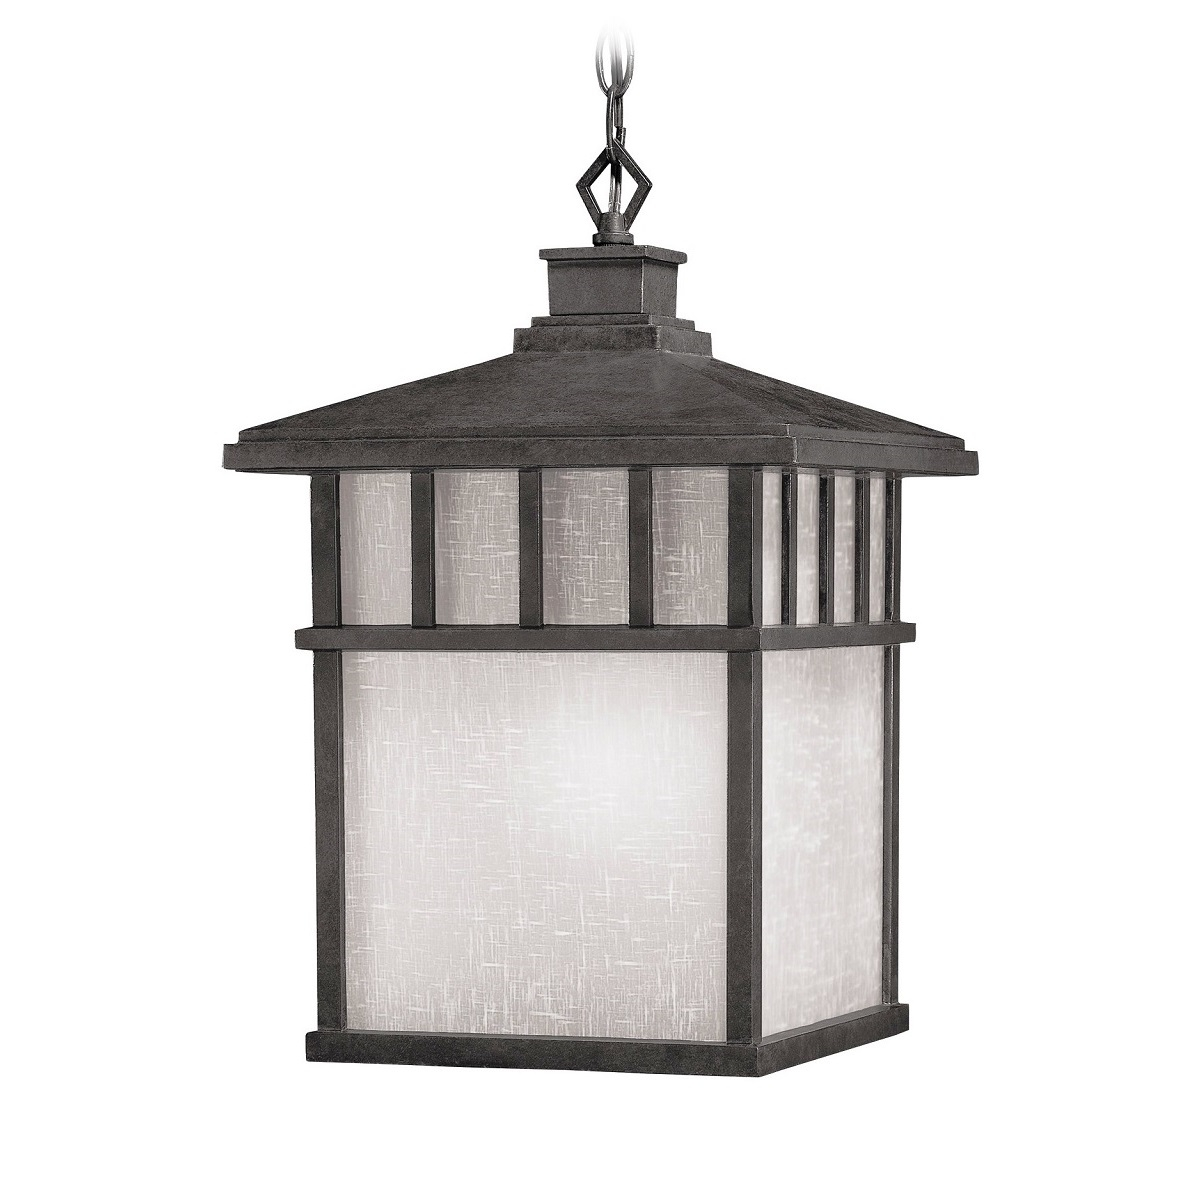 Dolan Designs Barton 1 Light Outdoor Lantern L Brilliant Source Lighting